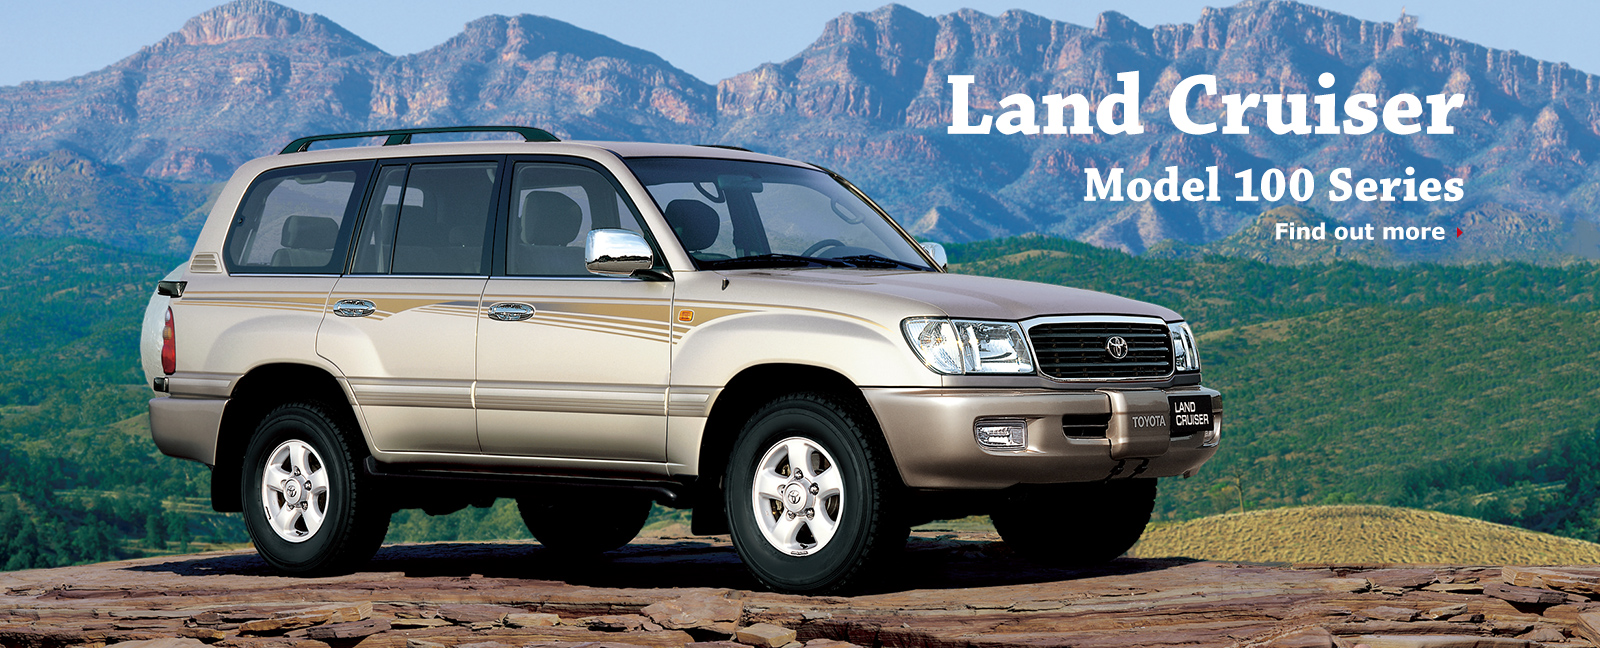 Toyota Land Cruiser 100 Series 1997 - 2002 SUV 5 door #1